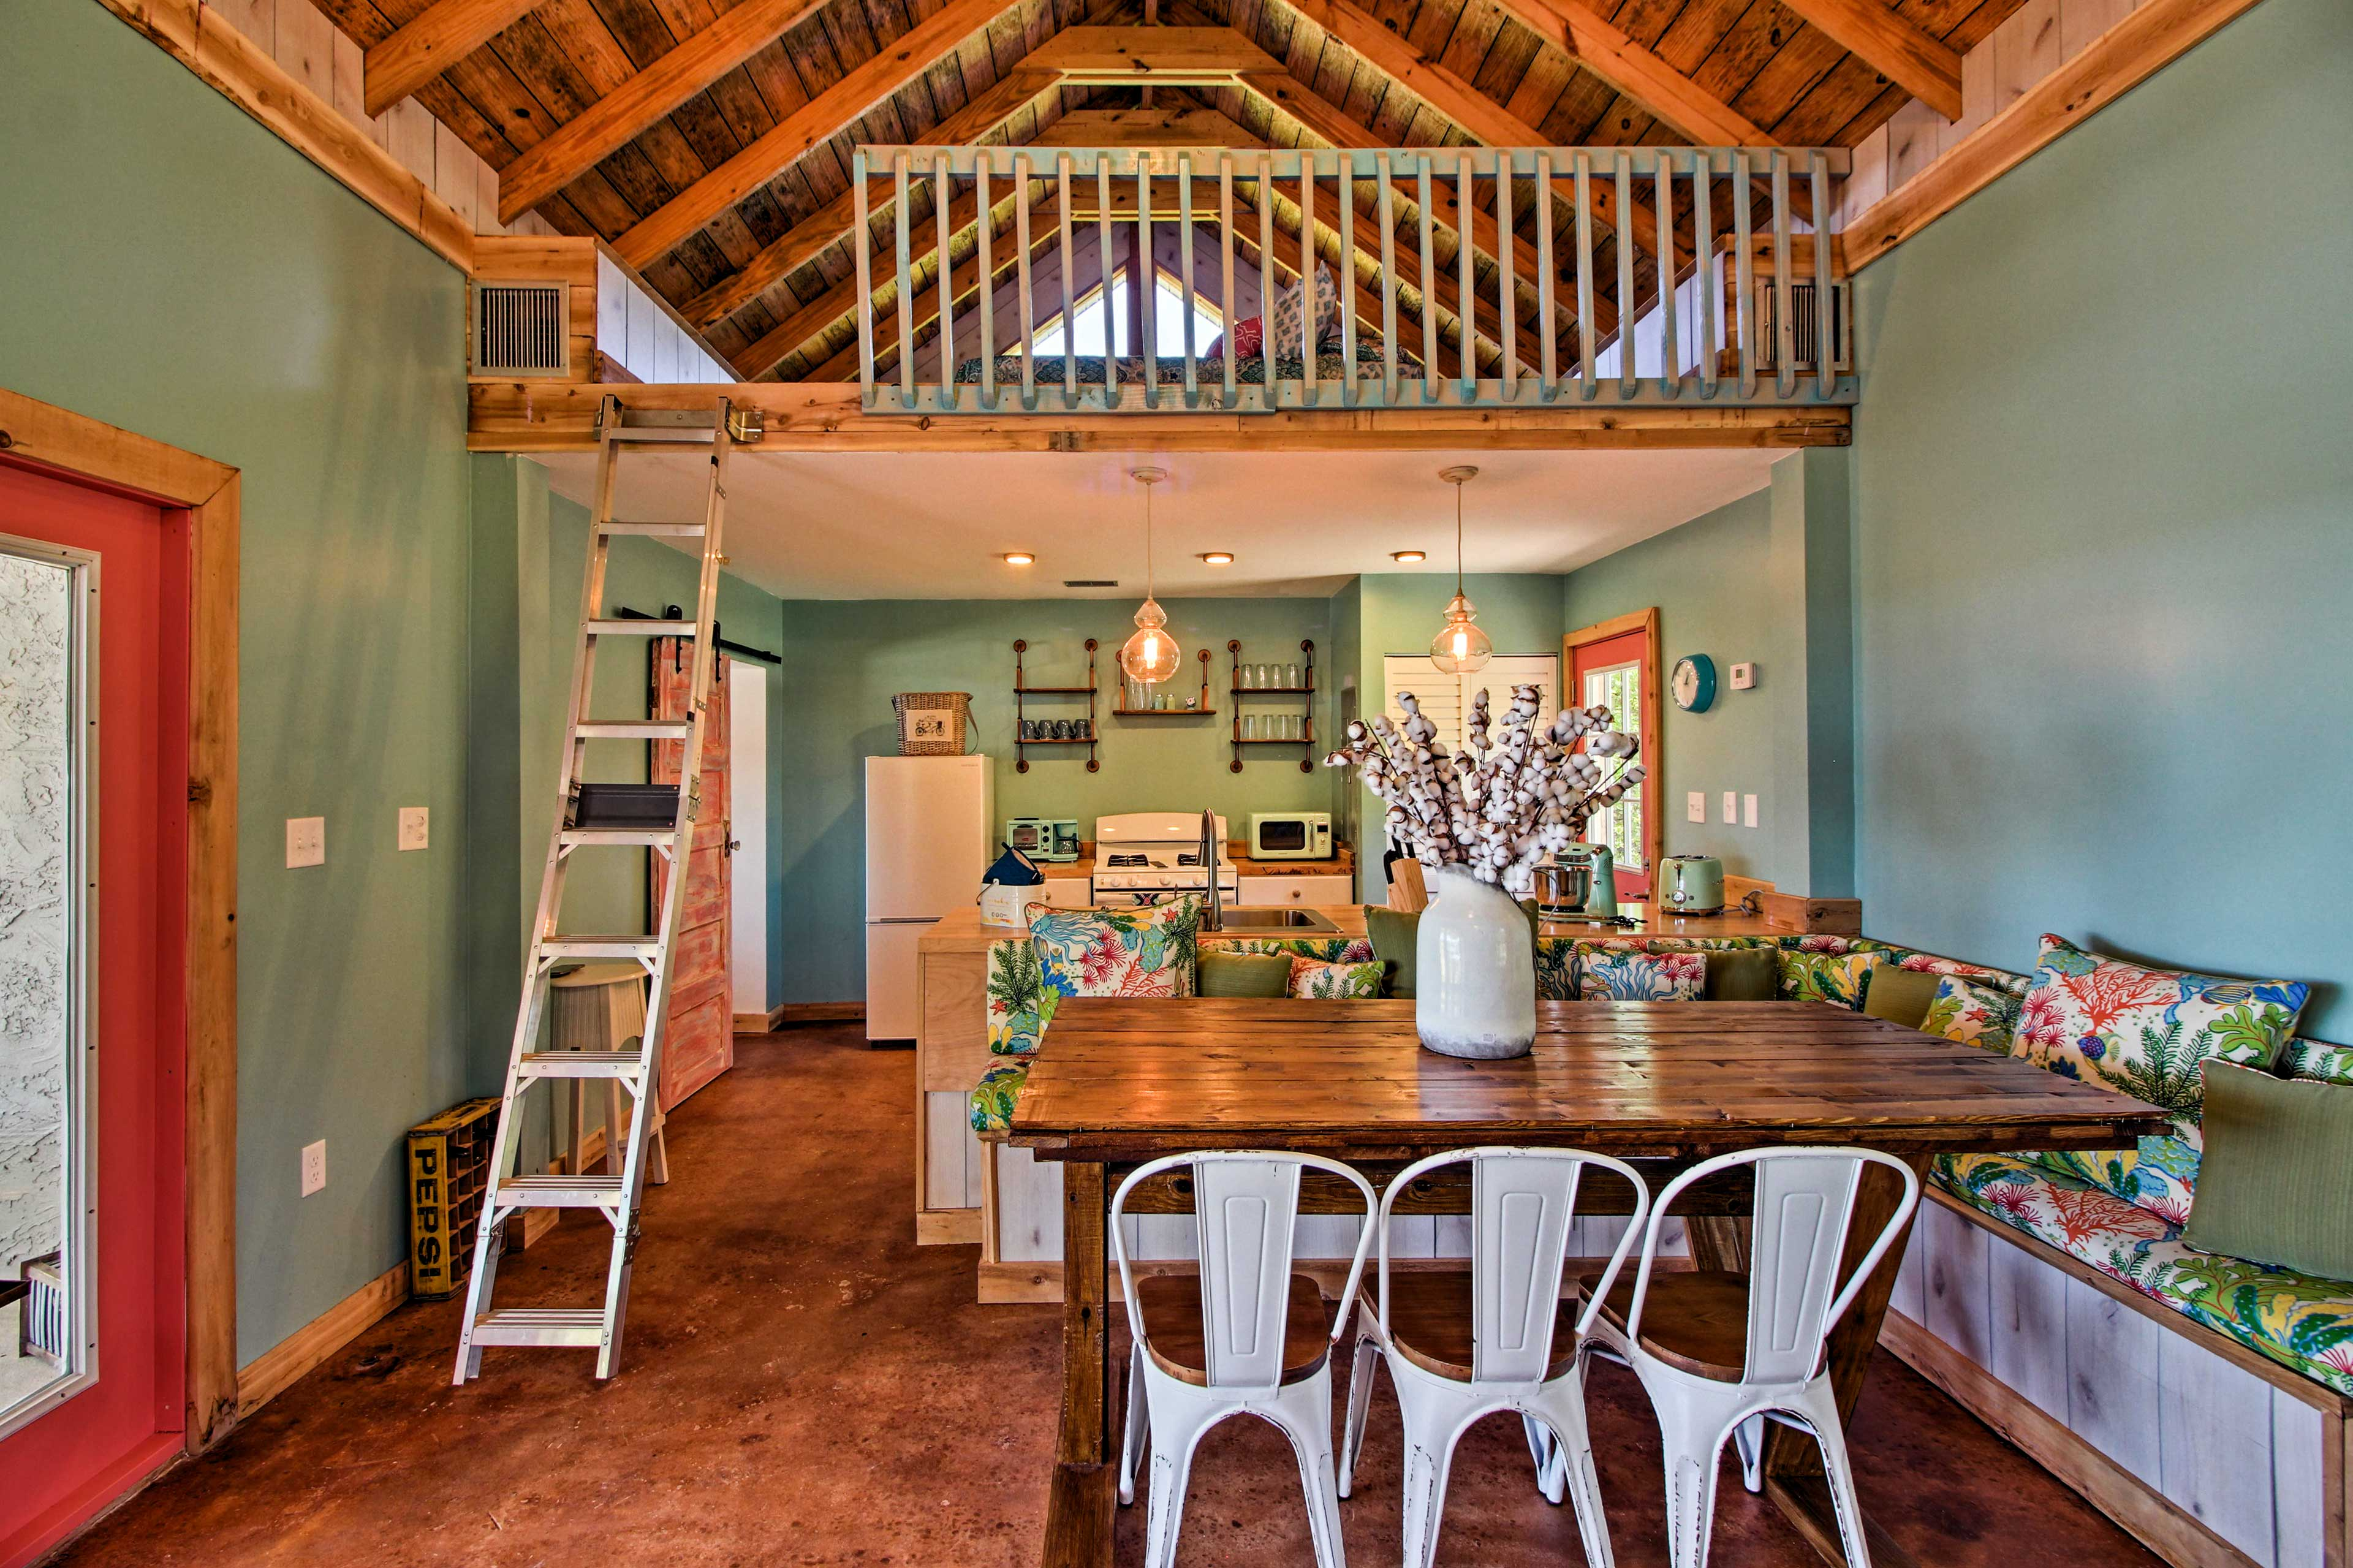 The expansive 1,300-square-foot space is flooded with the warm Georgia sunshine.